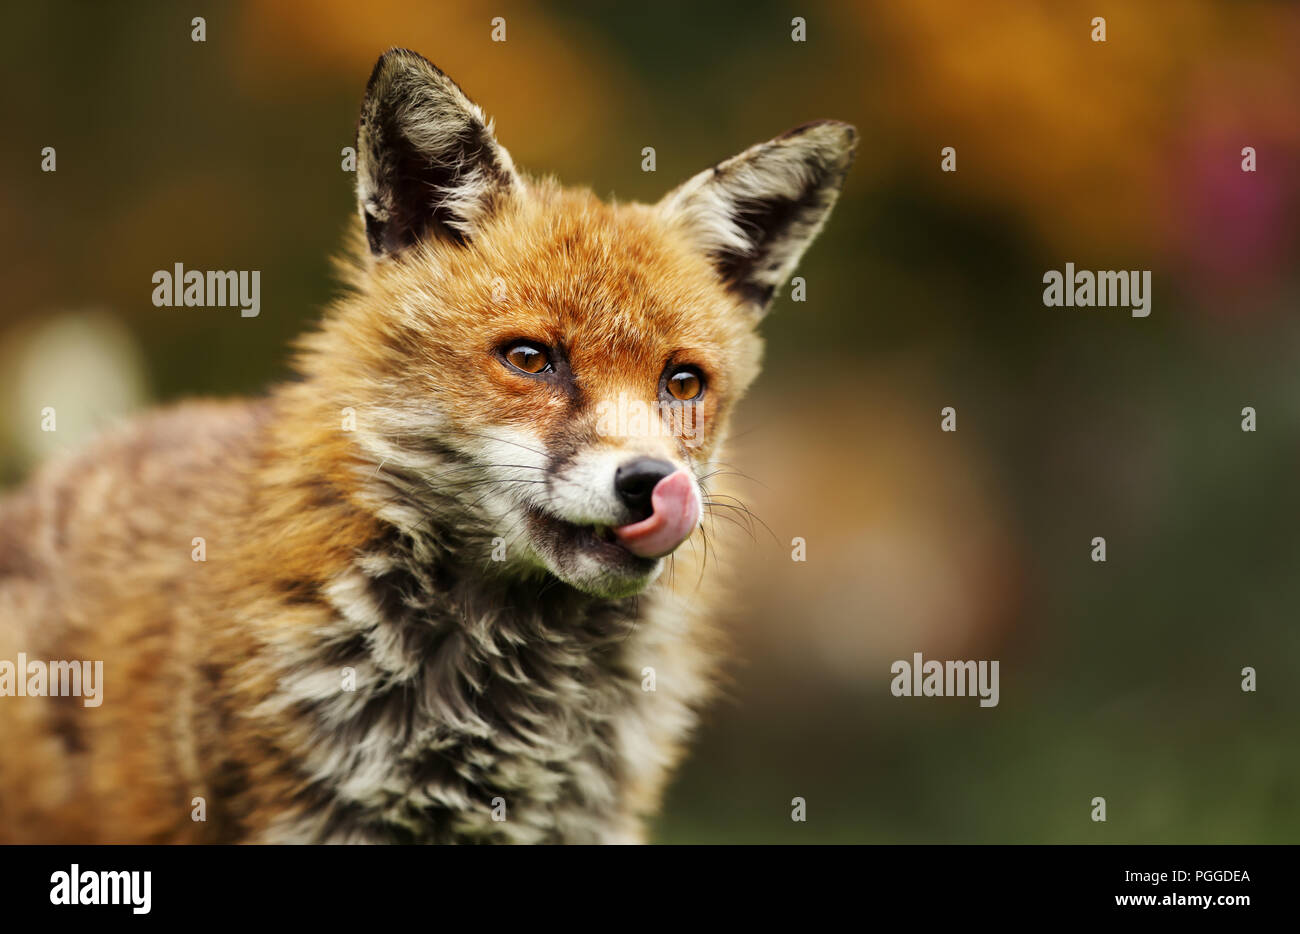 Close-up of a Red Fox with its tongue sticking out during a visit in the garden, UK. - Stock Image